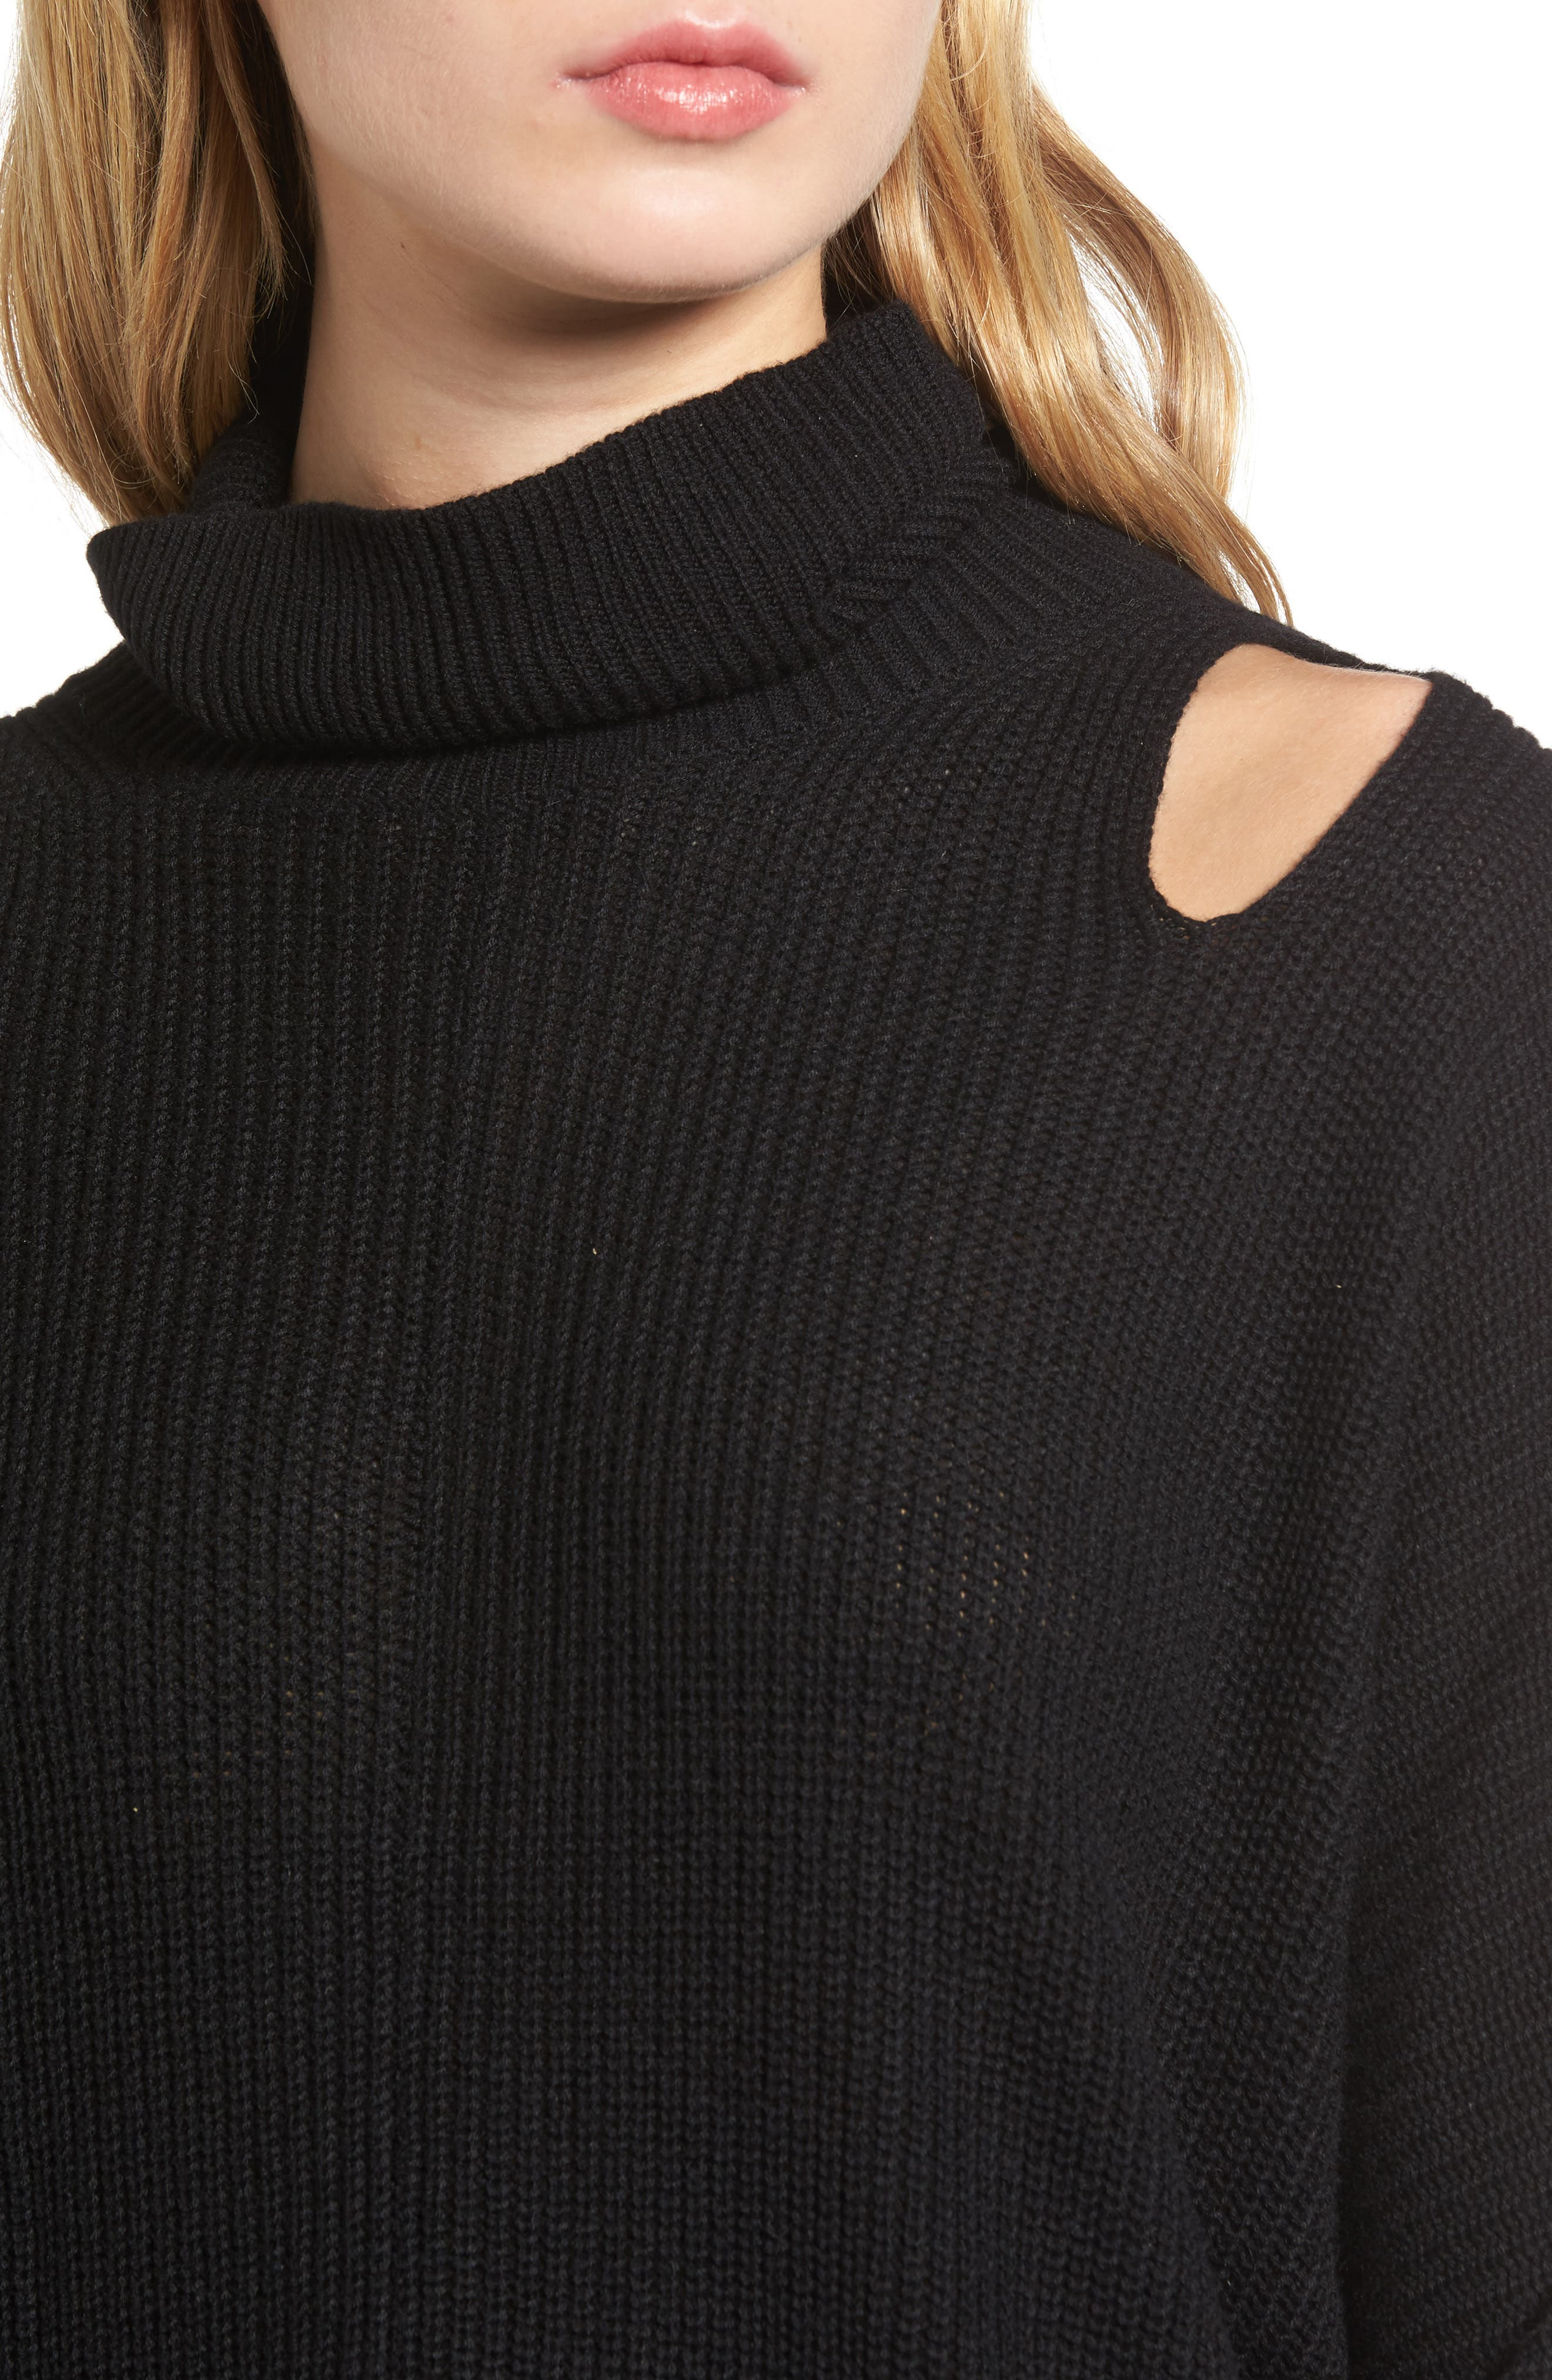 Cutout Sweater,                             Alternate thumbnail 7, color,